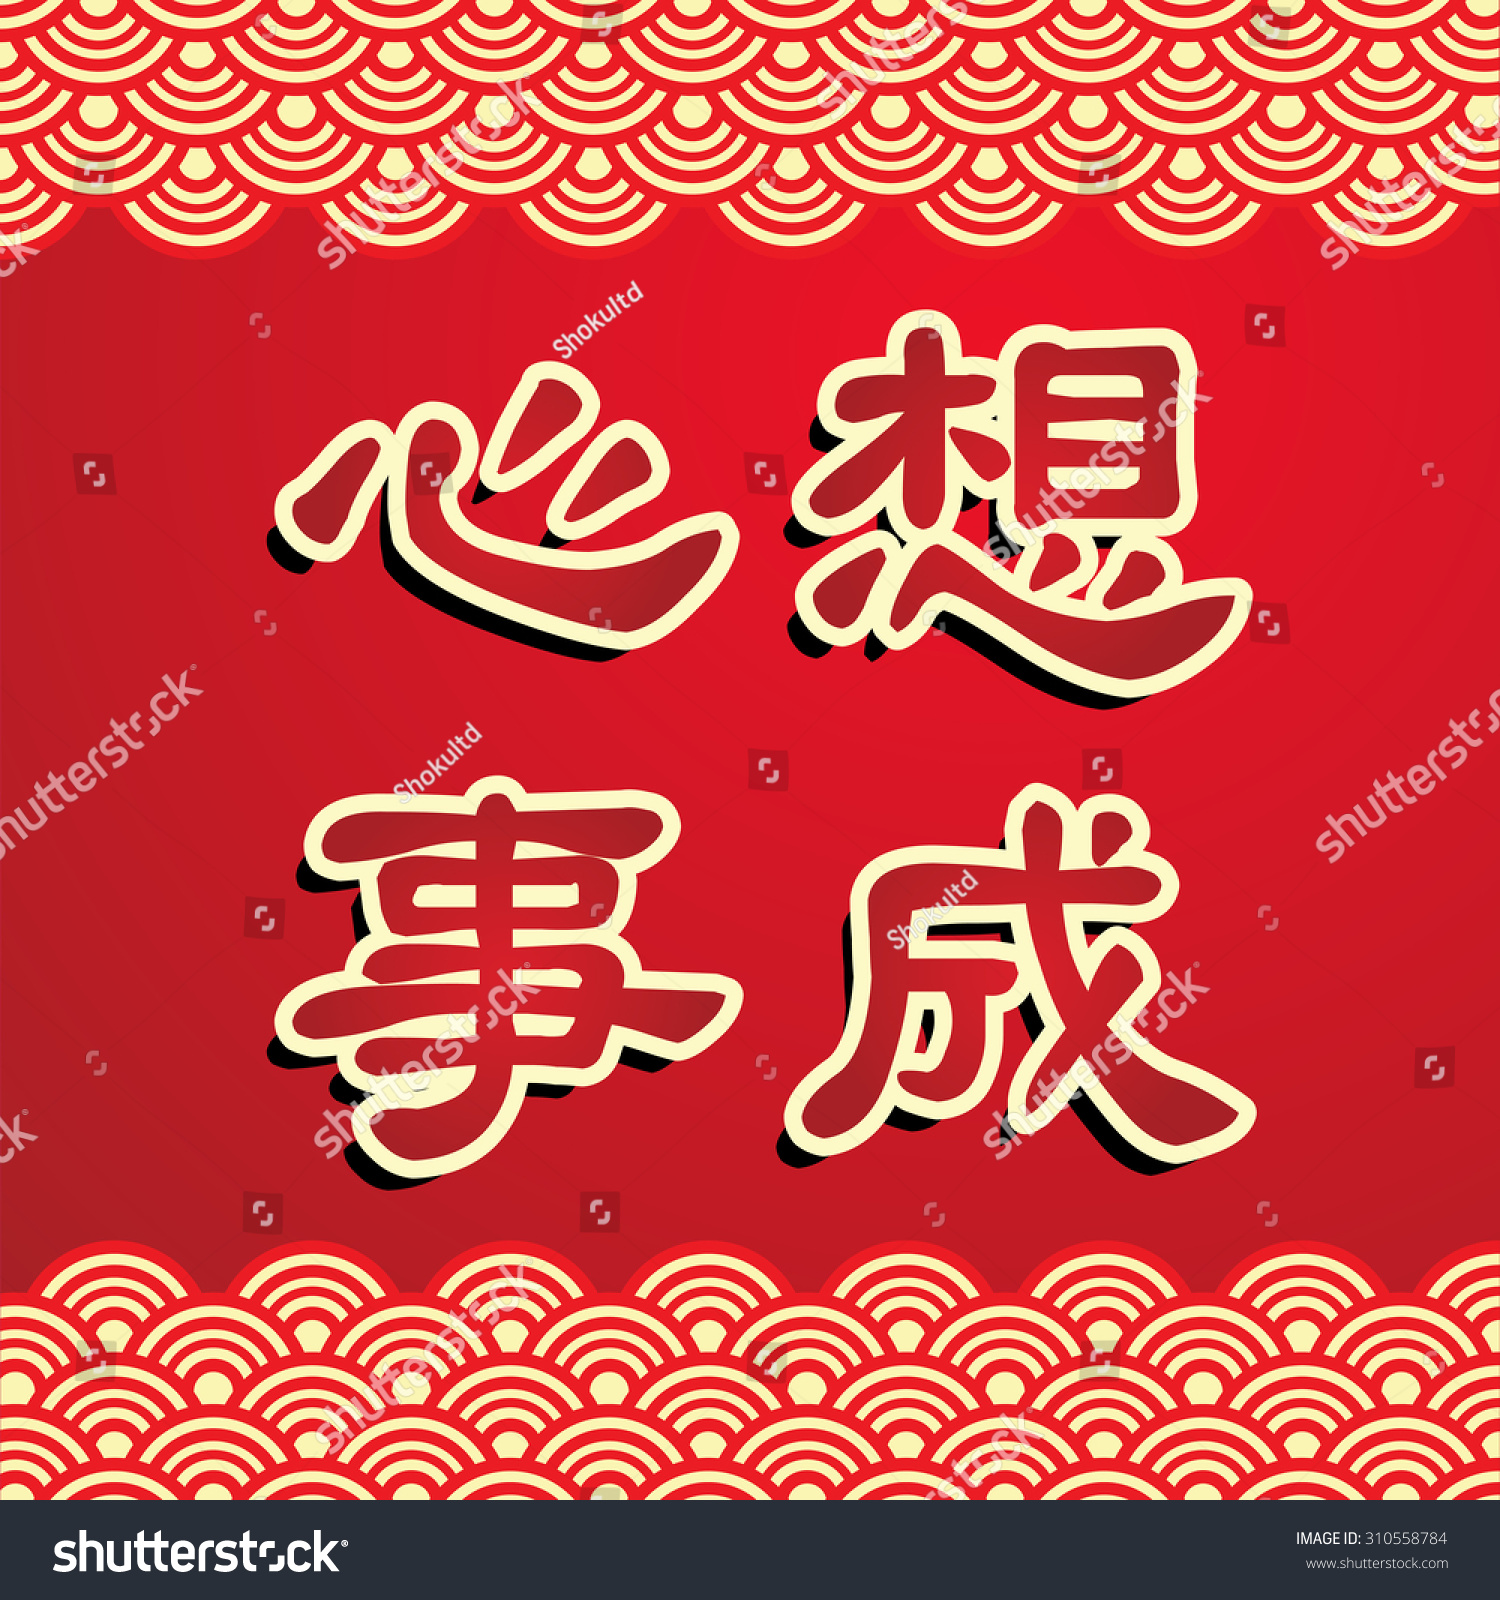 Lunar new year greeting card design stock vector 310558784 lunar new year greeting card design translation may all your wishes come true m4hsunfo